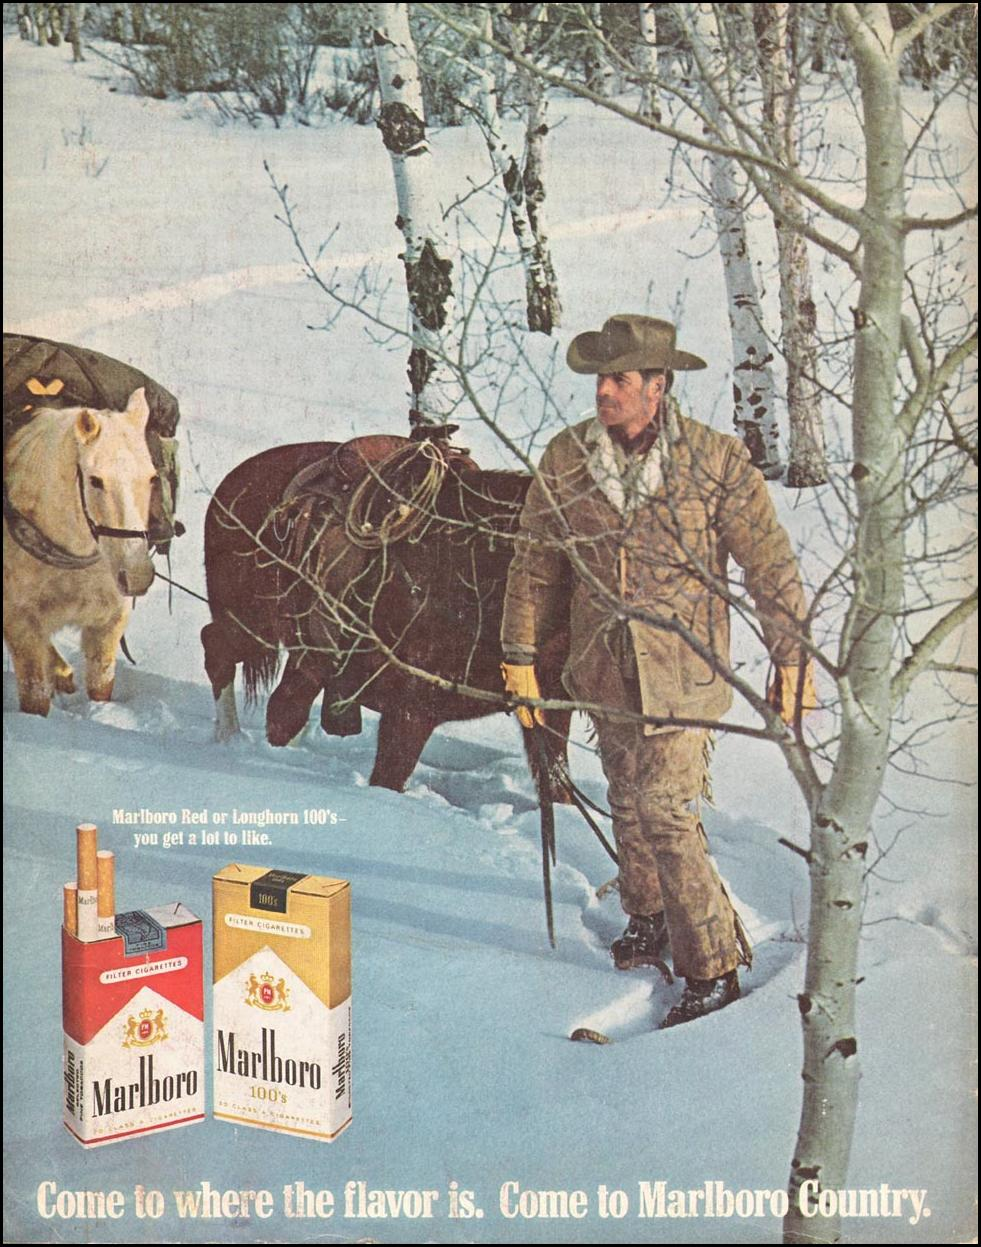 MARLBORO CIGARETTES SATURDAY EVENING POST 02/08/1969 BACK COVER